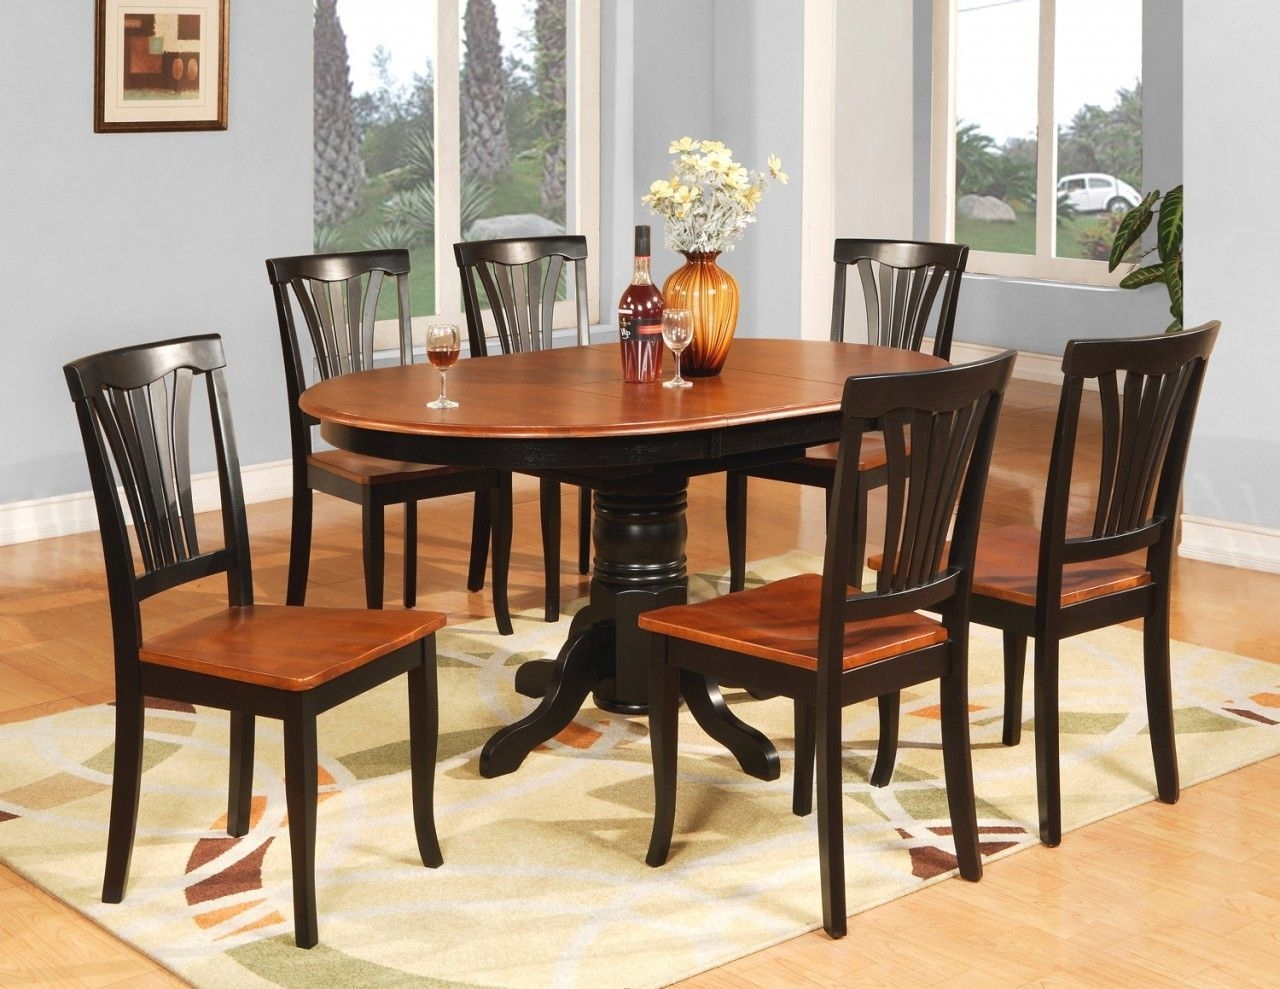 2 Tone Oval Dining Tables And Chairs  Avon 5Pc Oval Kitchen Dining Table And 4 Wood Seat